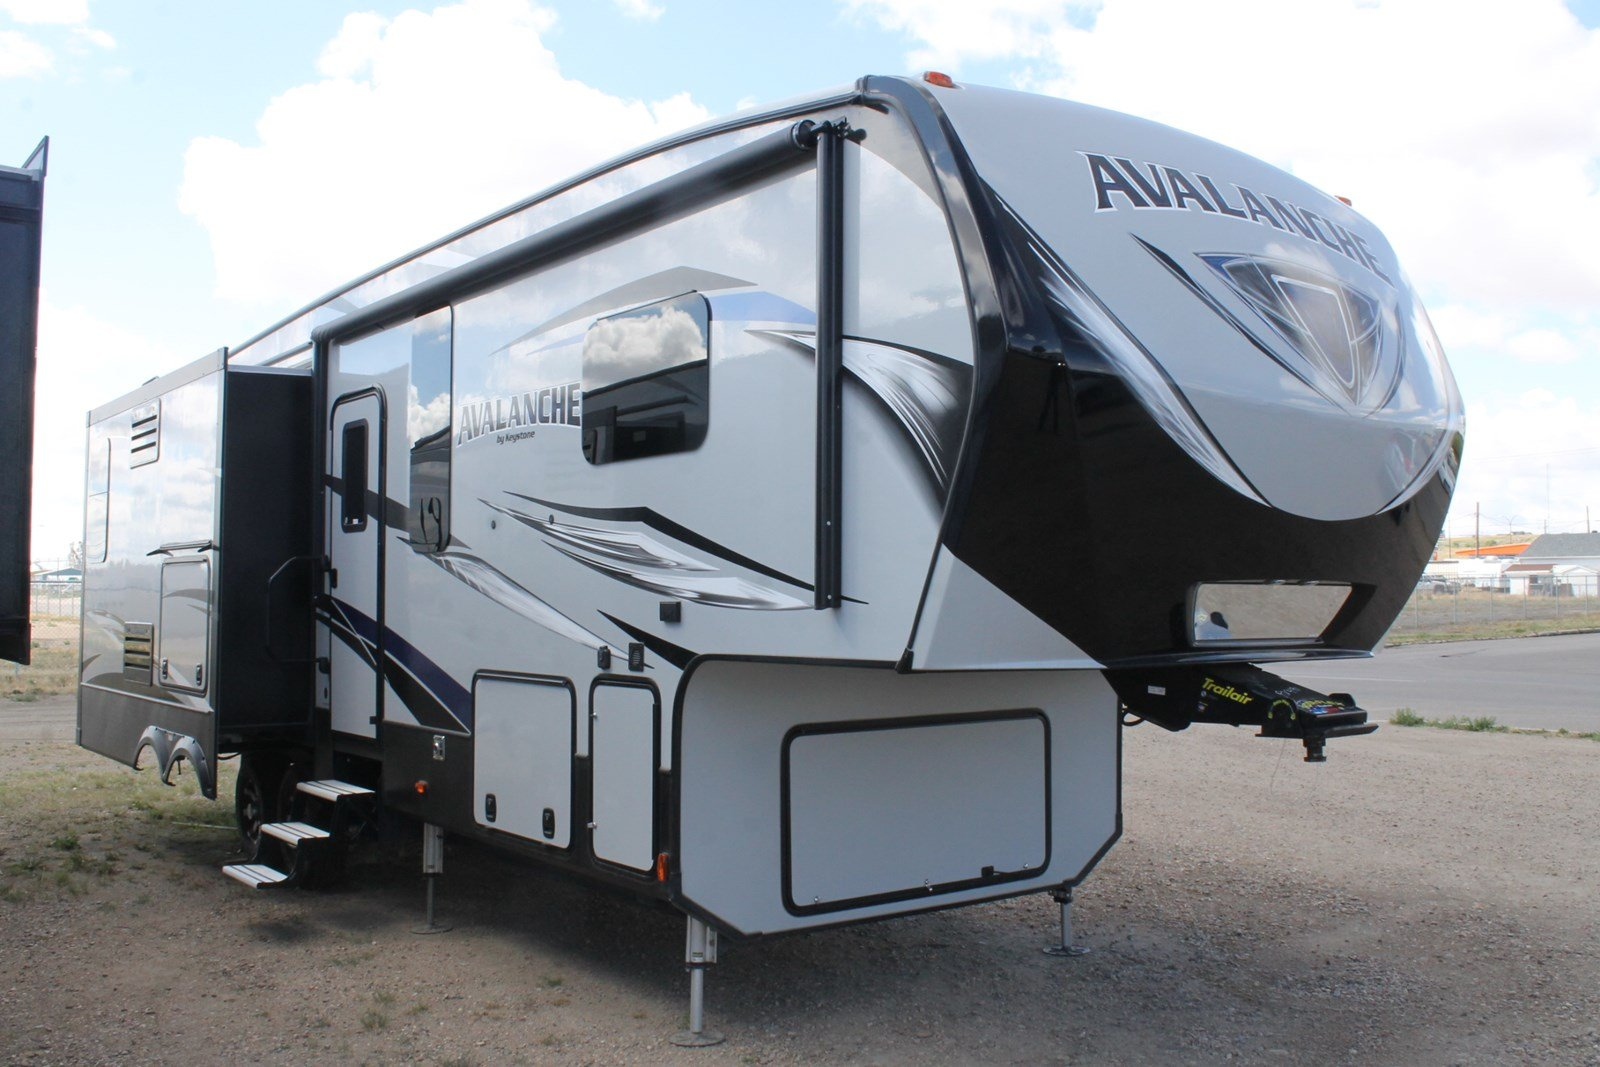 New AVALANCHE 330GR FIFTH WHEEL